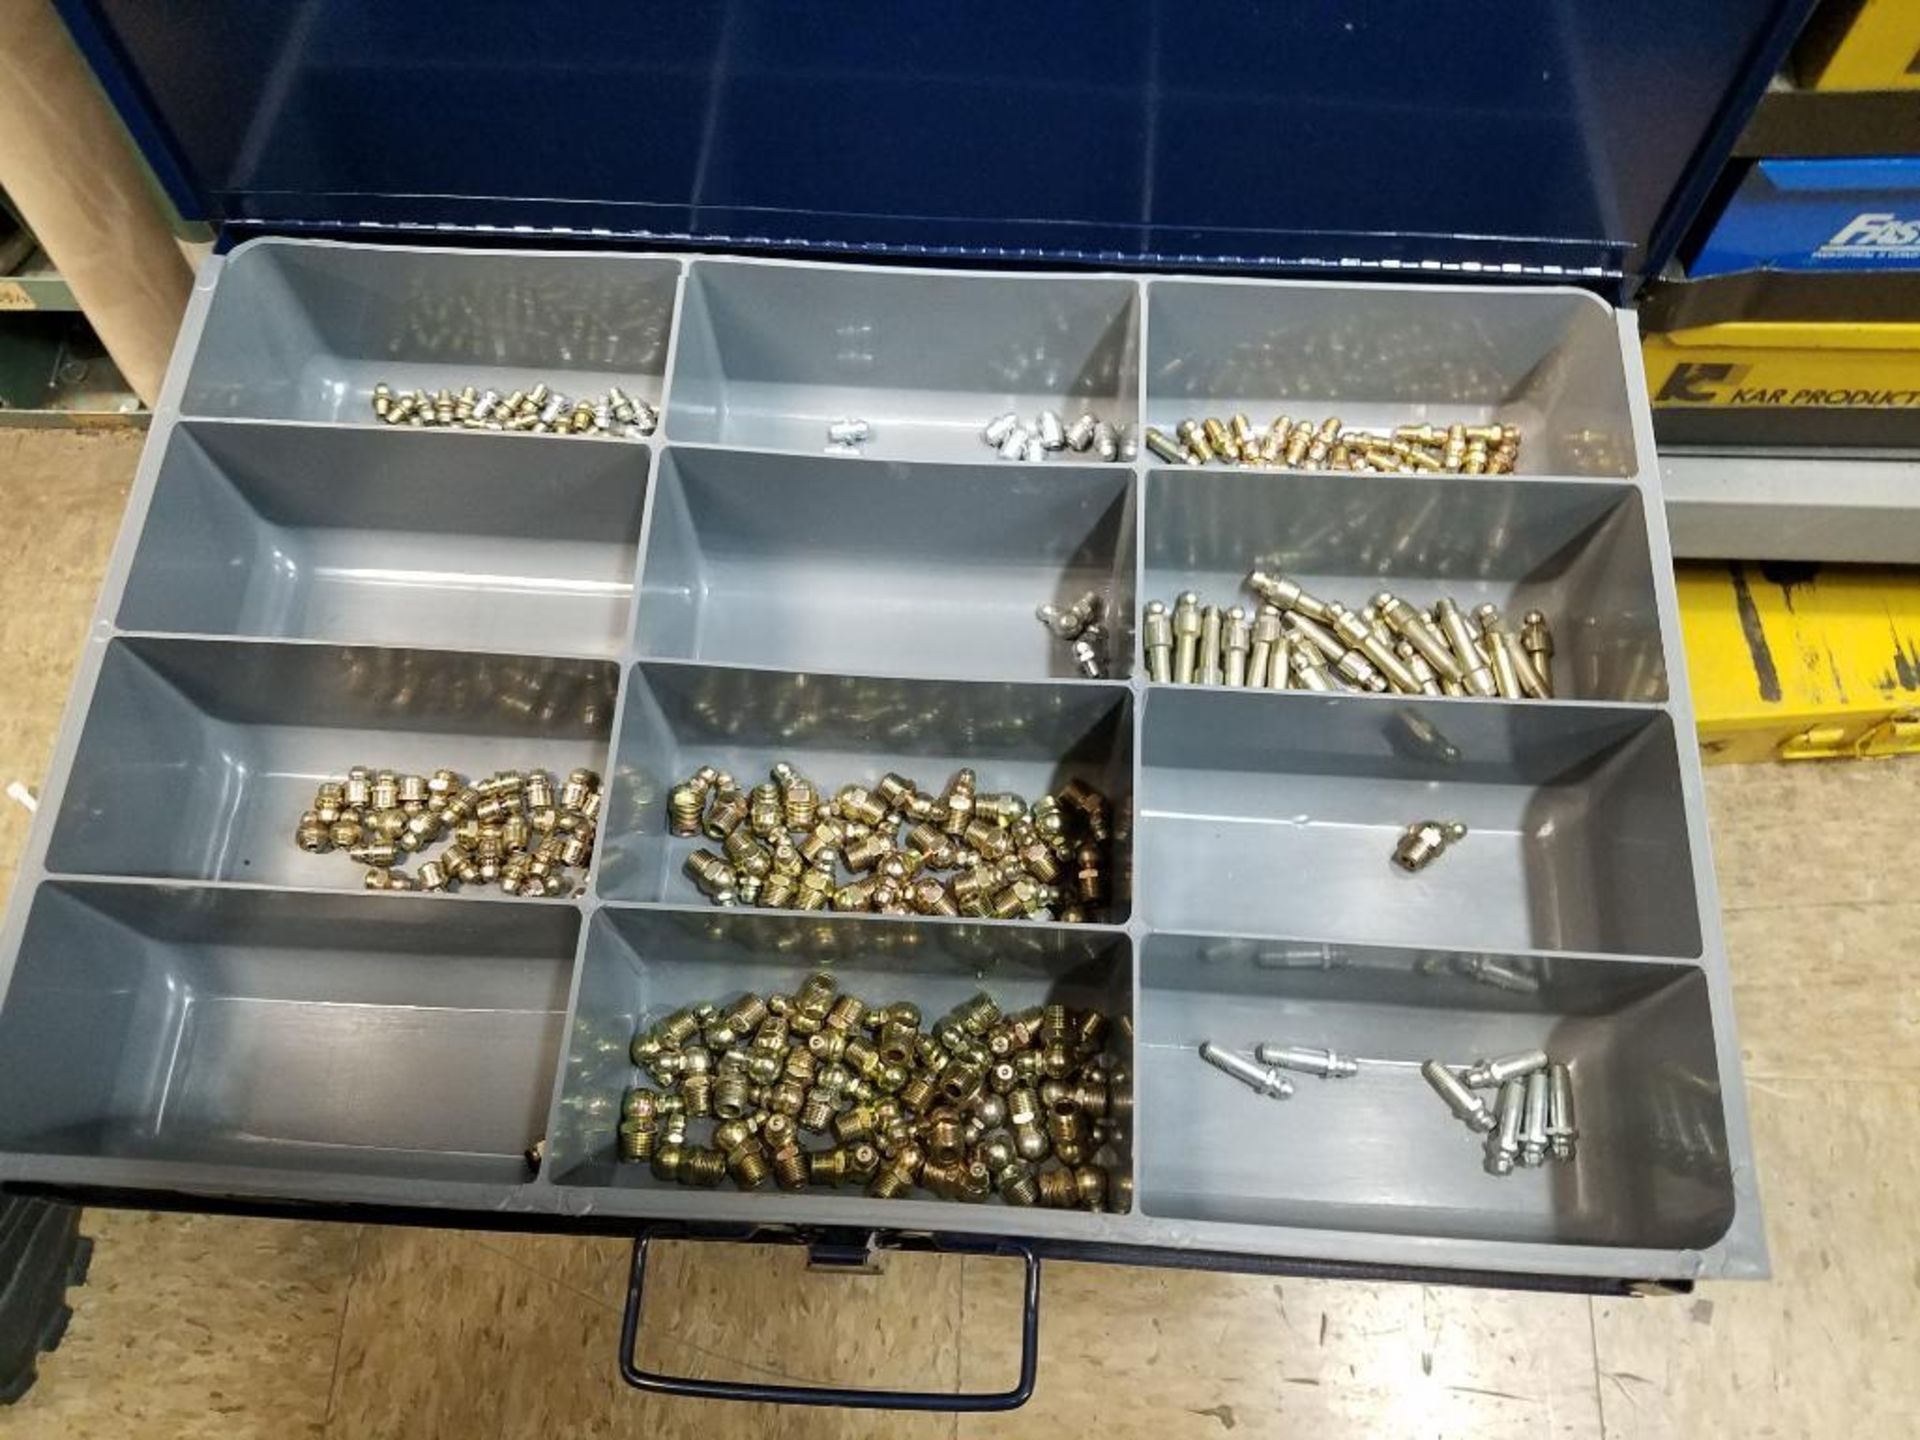 tek screws, roll and taper pins, electrical terminals, set screws, O-rings, brass poly fittings - Image 28 of 29